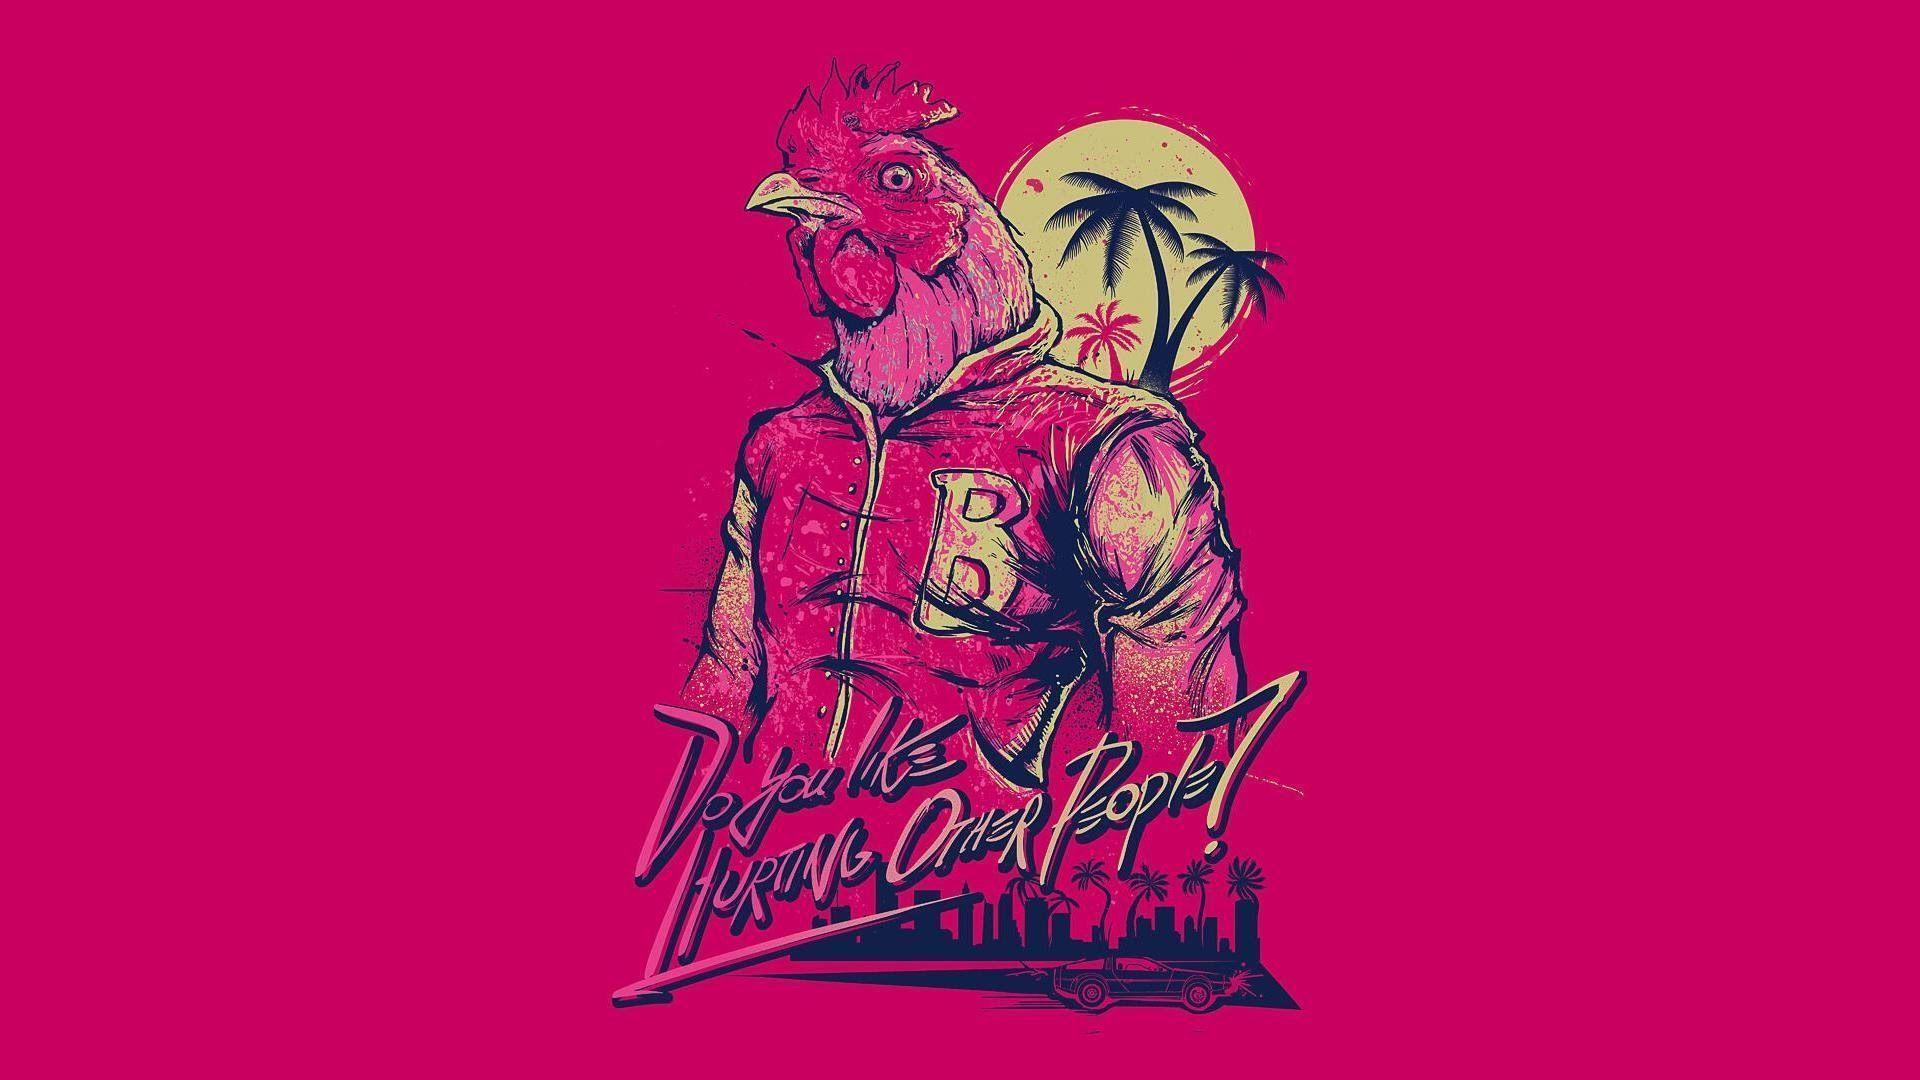 Hotline Miami Wallpapers Wallpaper Cave